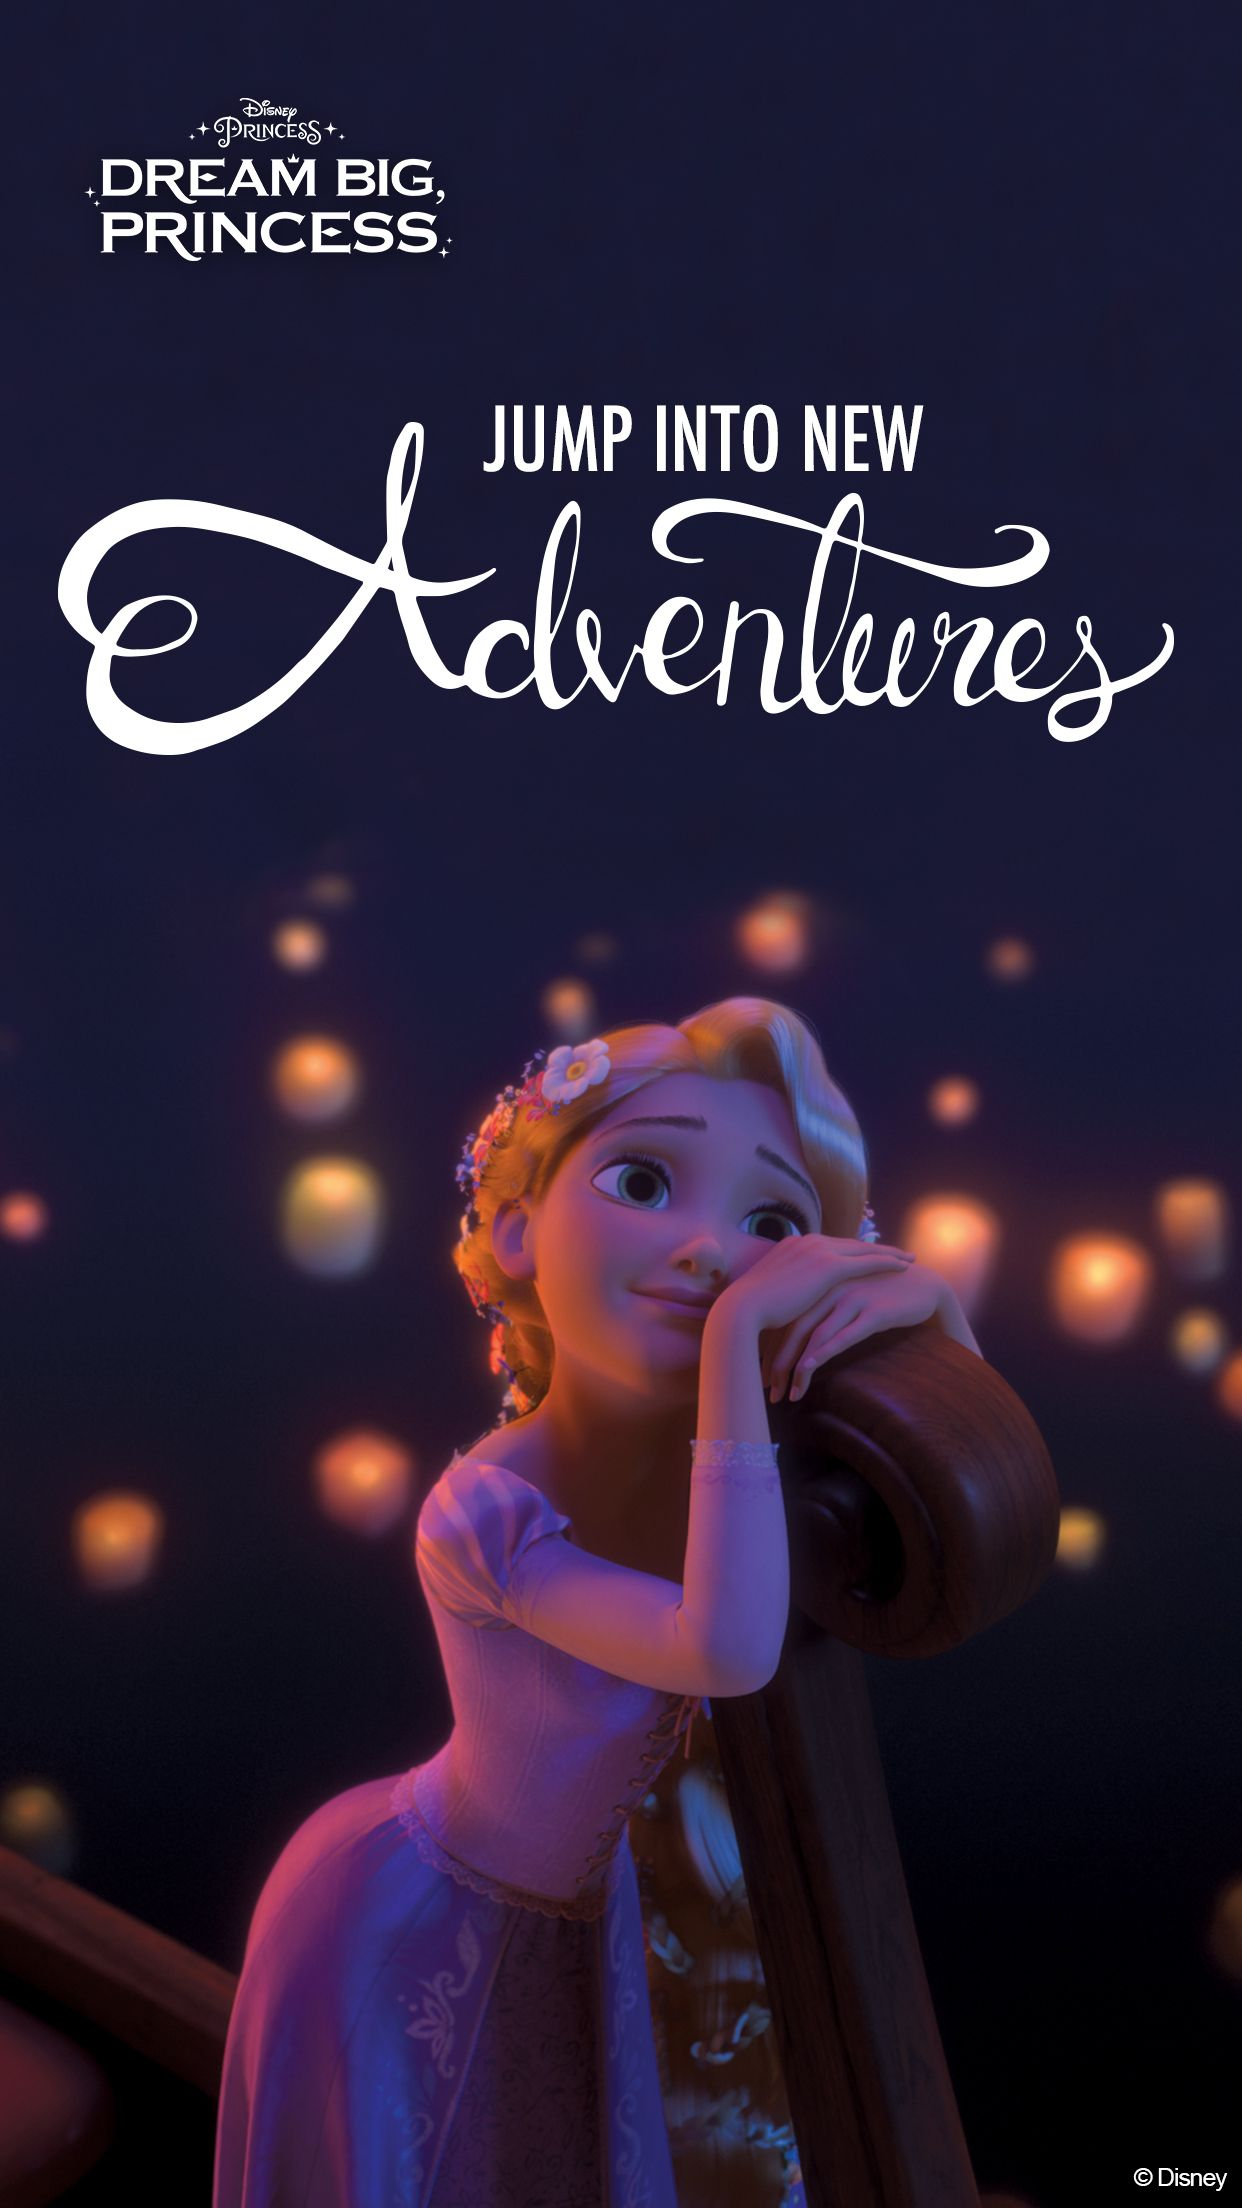 Download These Inspirational Dream Big Princess Wallpapers On To Your Phone And Share It With Your F Disney Princess Wallpaper Disney Kids Princess Rapunzel